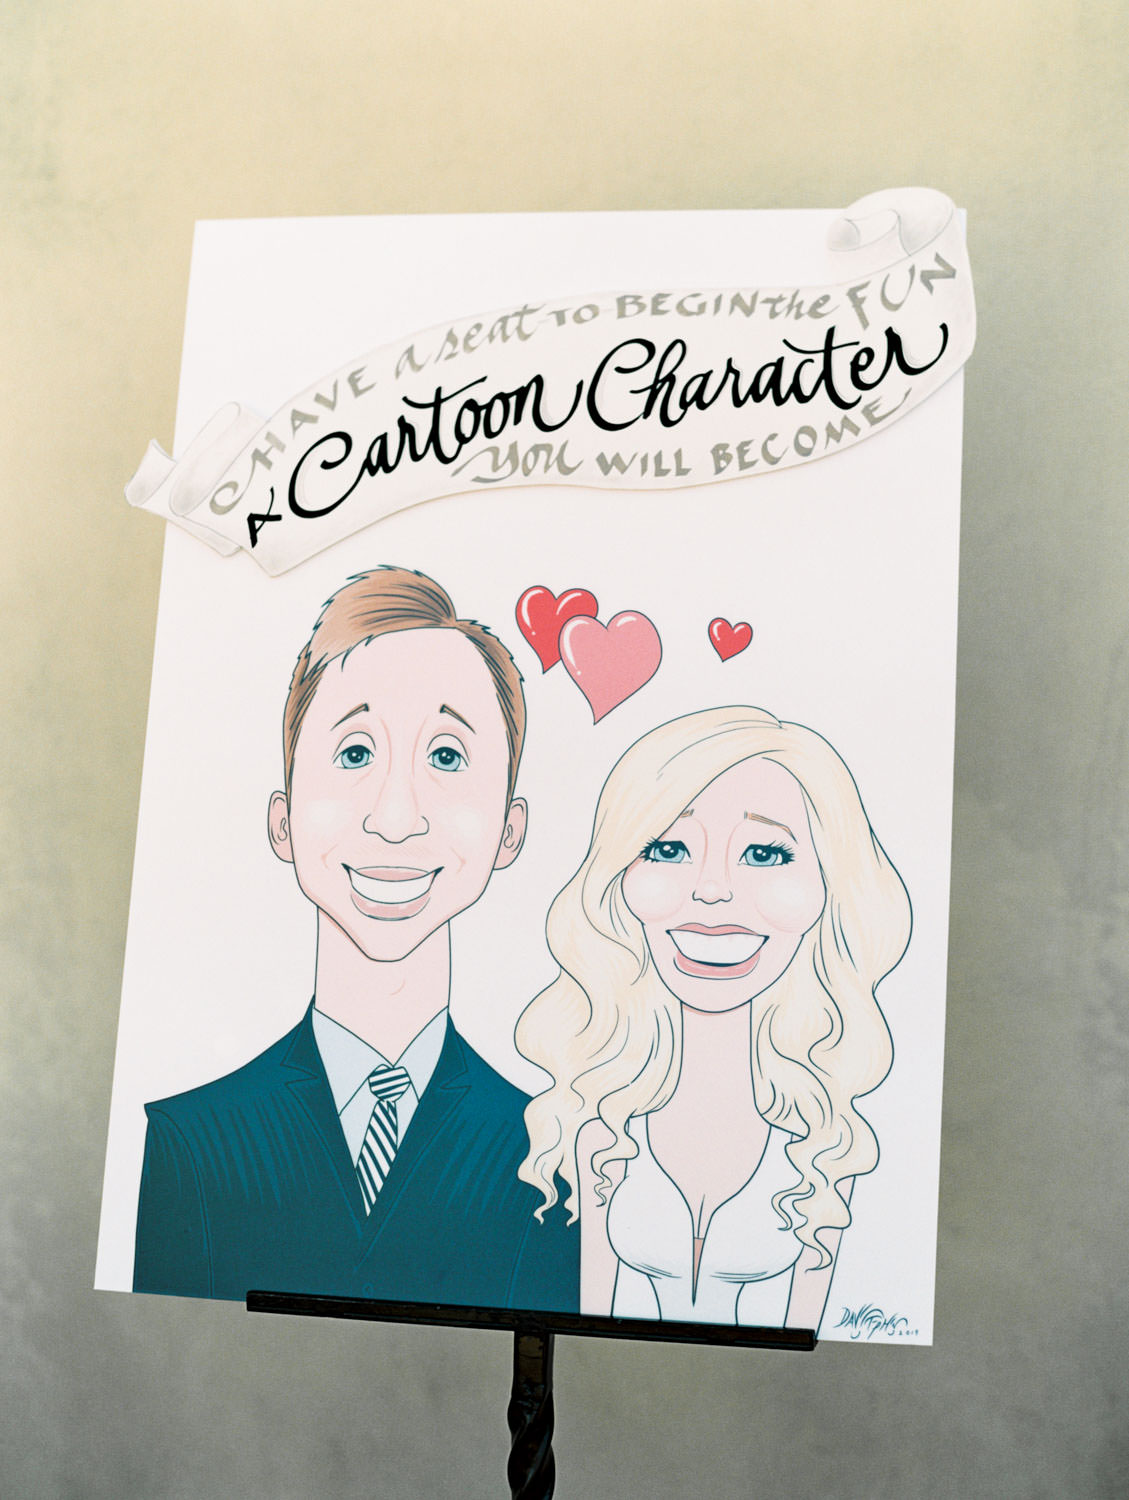 Caricature art of the bride and groom for their wedding cocktail hour. Turn guests into cartoon characters for a fun and unique activity that's interactive. Estancia La Jolla wedding shot on film by Cavin Elizabeth Photography